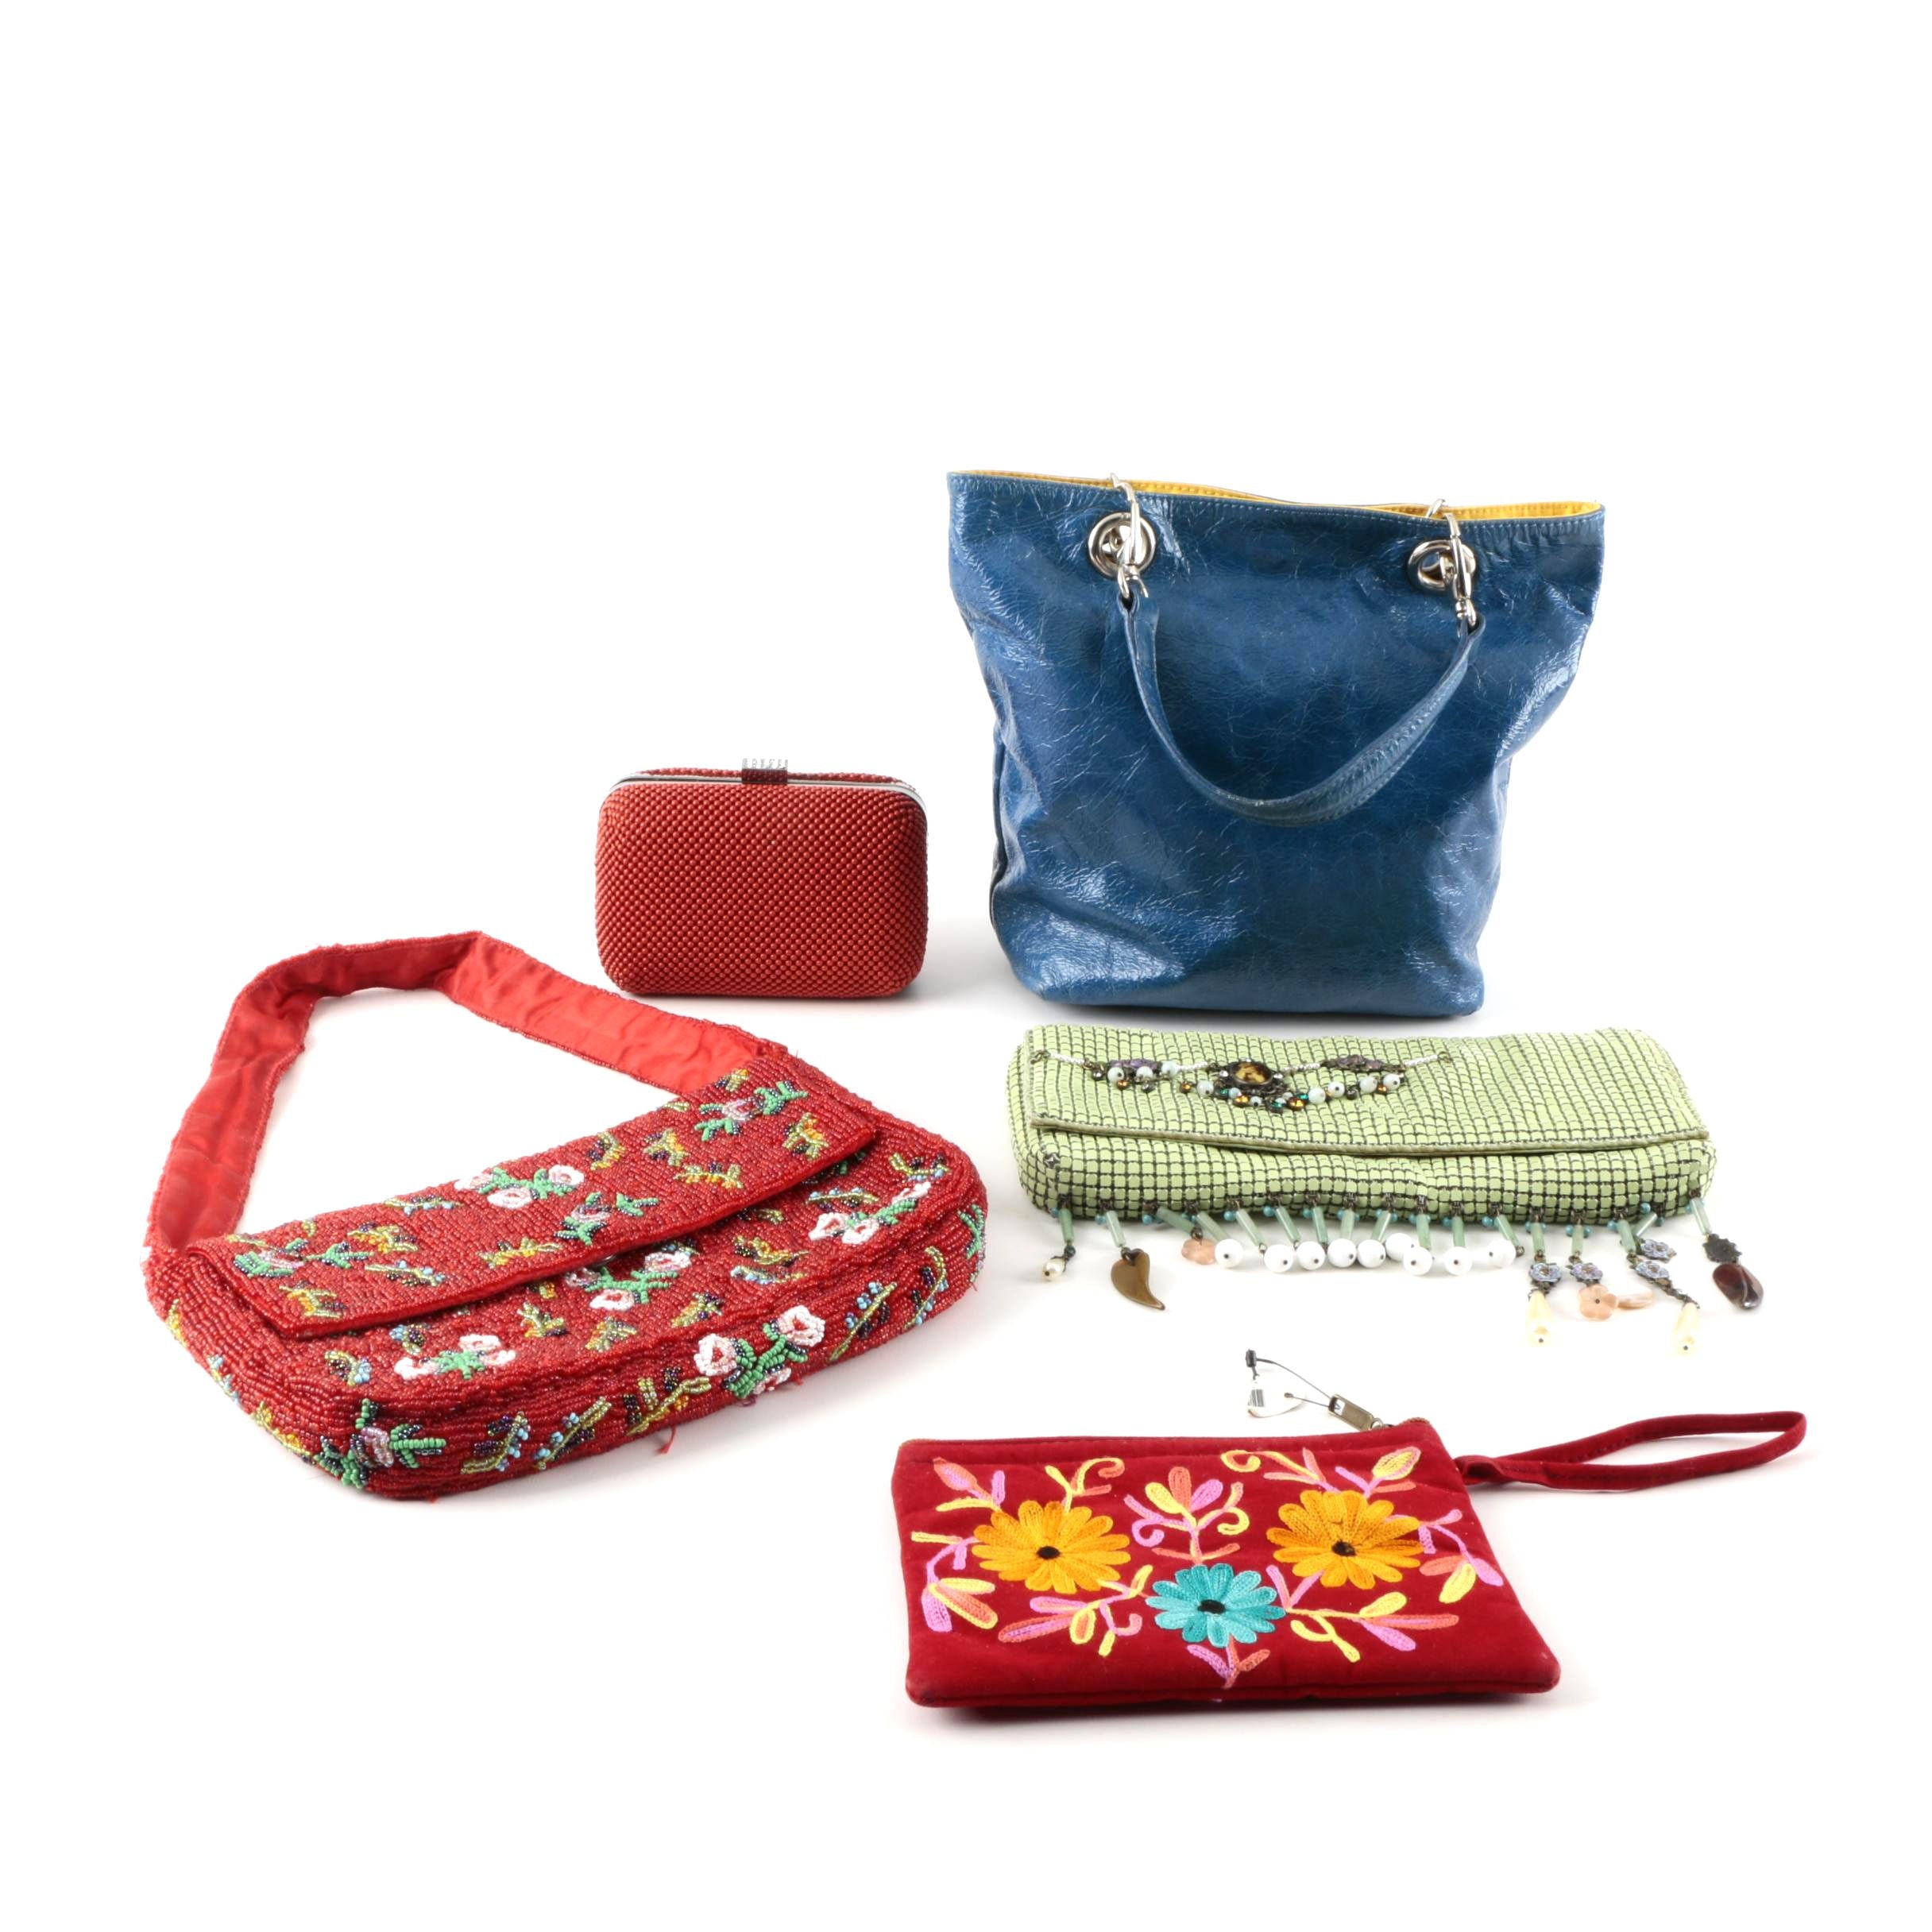 Leather and Beaded Handbags and Clutch Purses